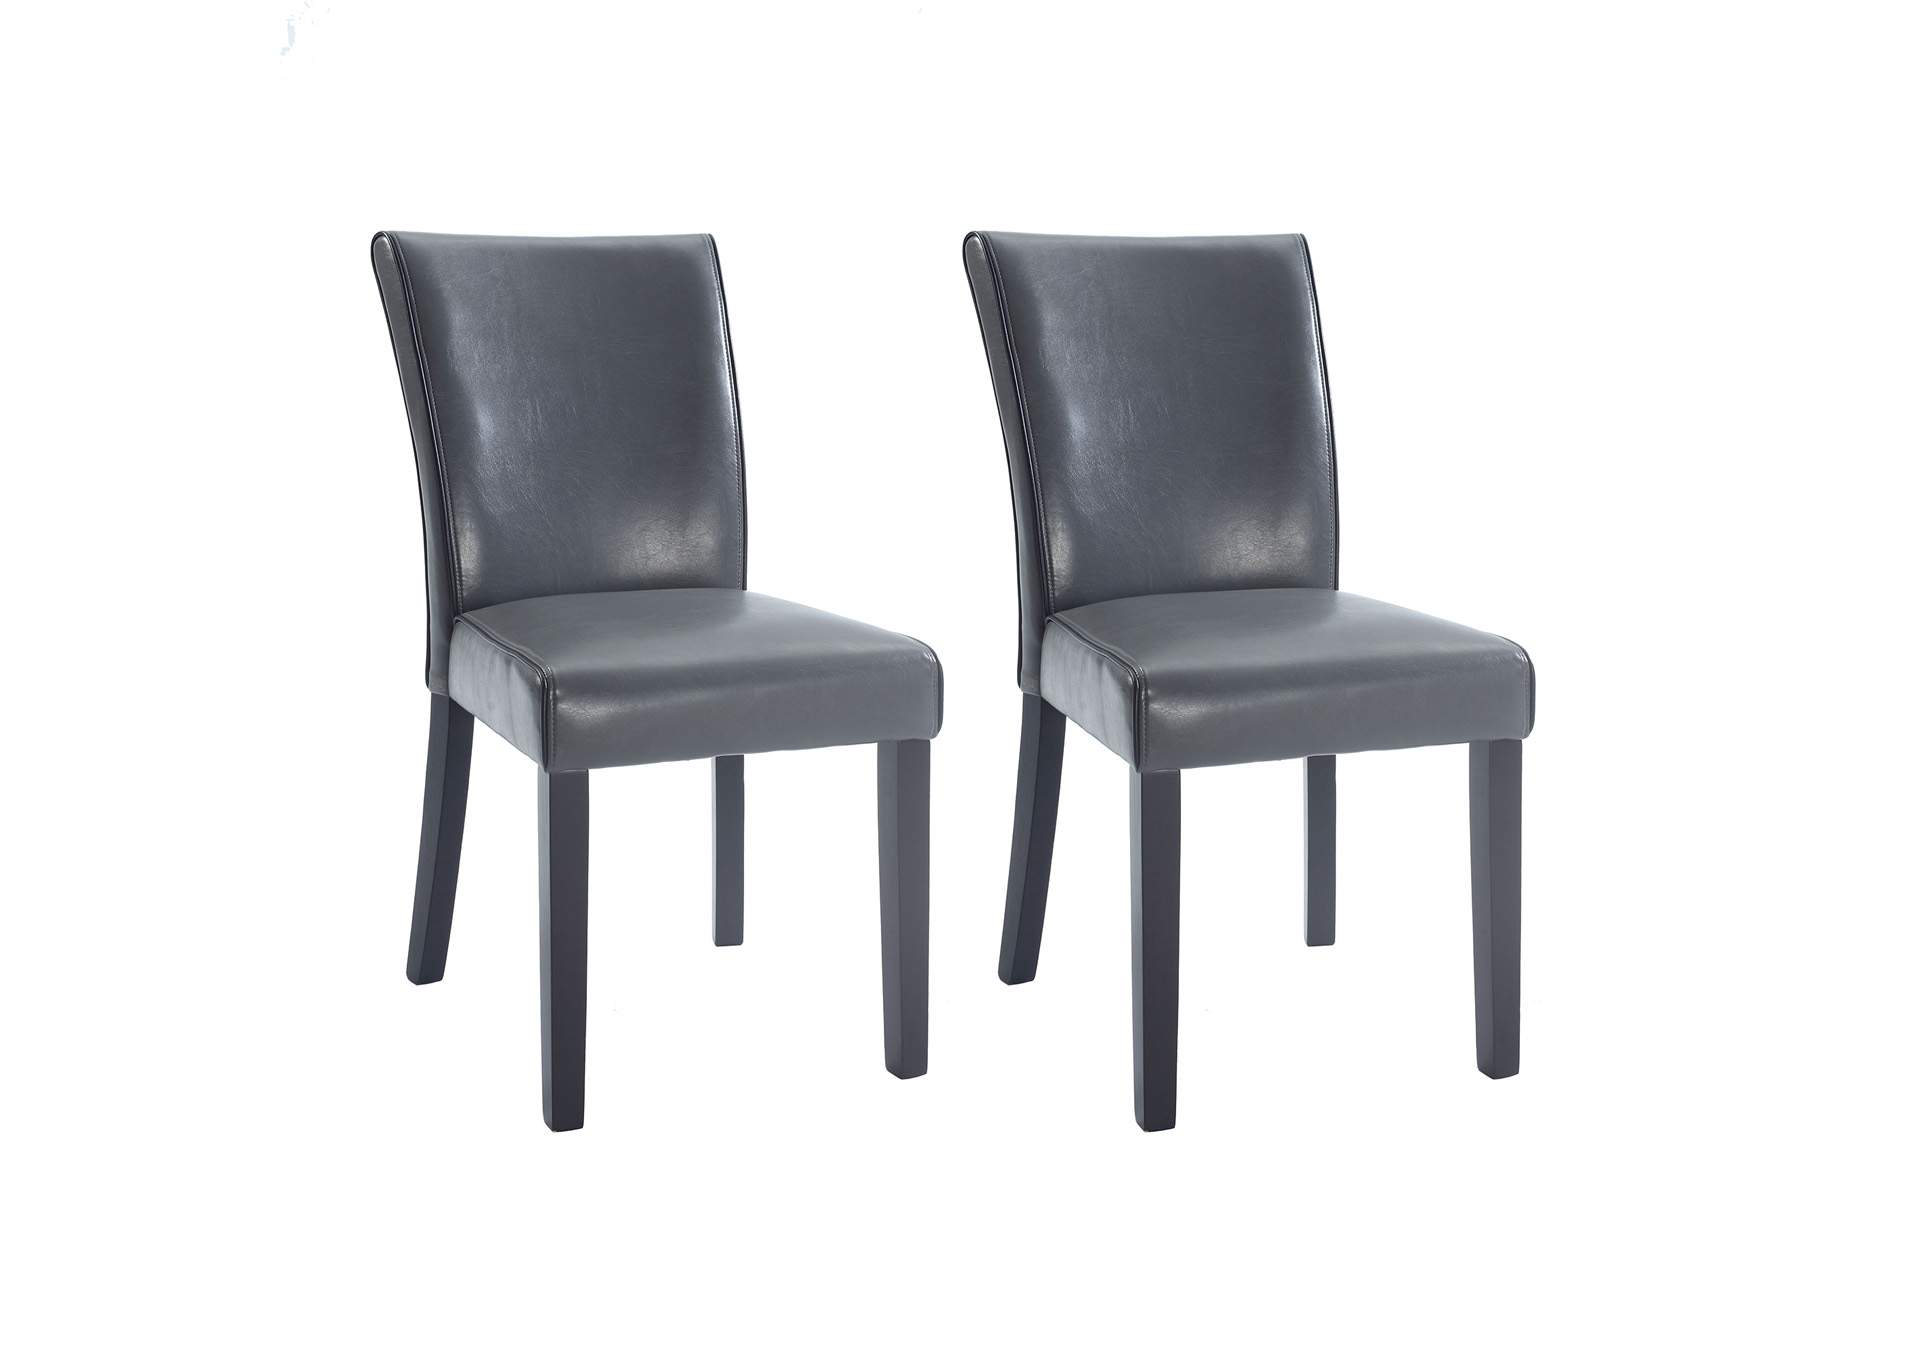 Michelle Grey Bonded Leather Parson Chair (Set of 2),Chintaly Imports